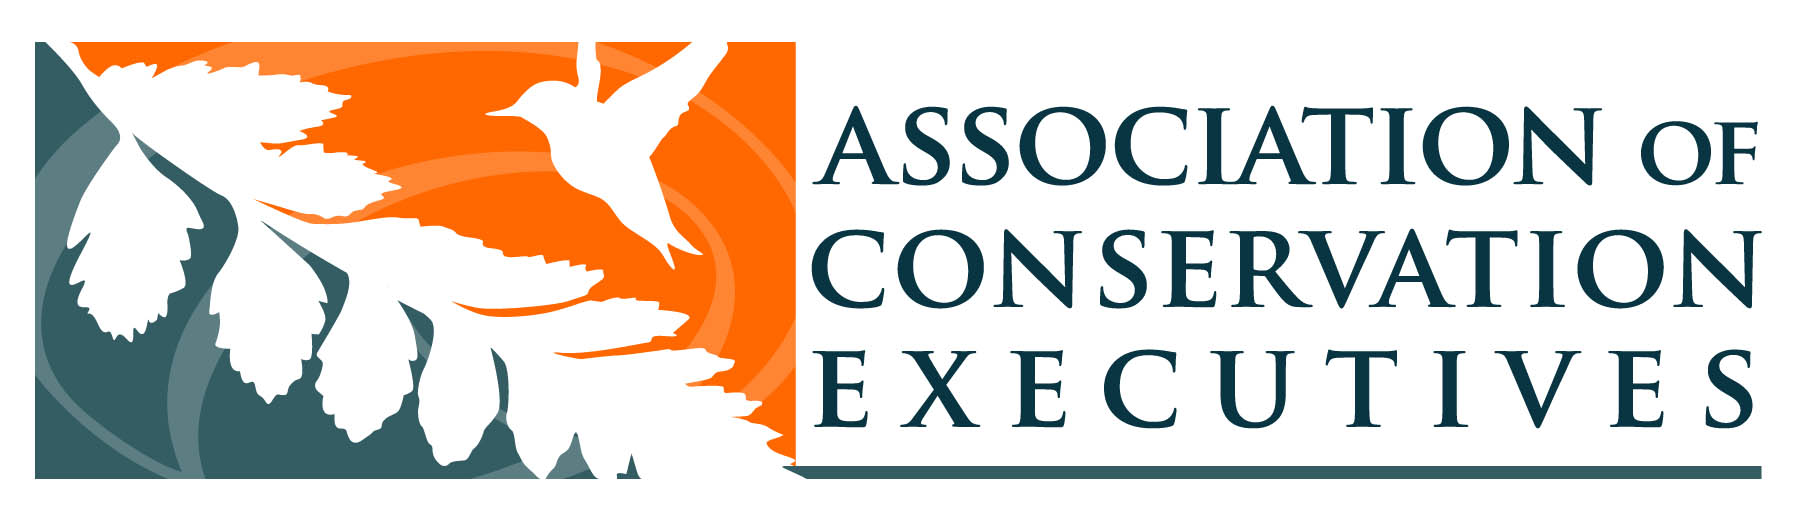 Association of Conservation Executives